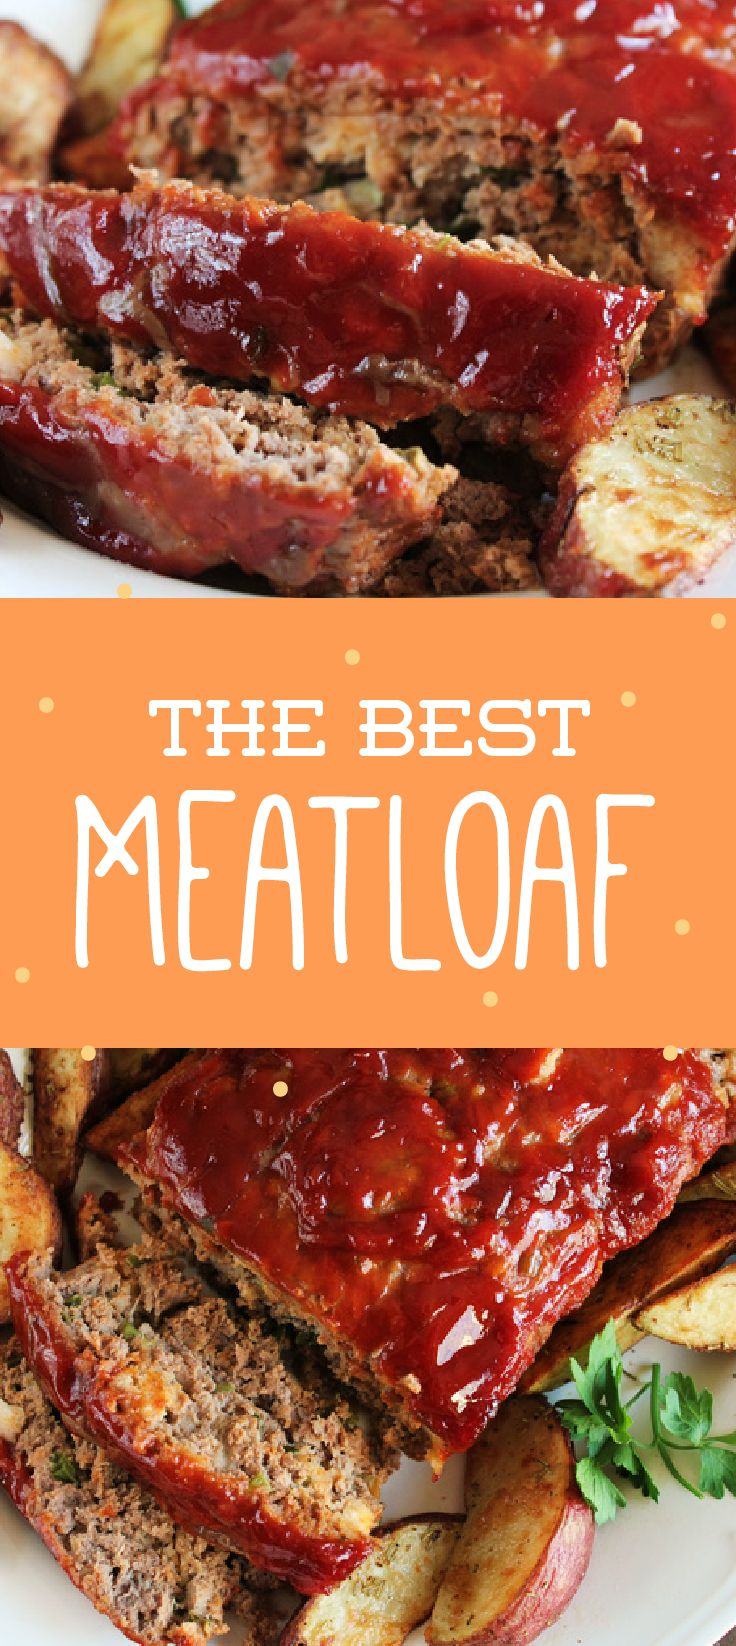 In need of a deliciously simple recipe? Prepare this meatloaf in just 20 minutes.